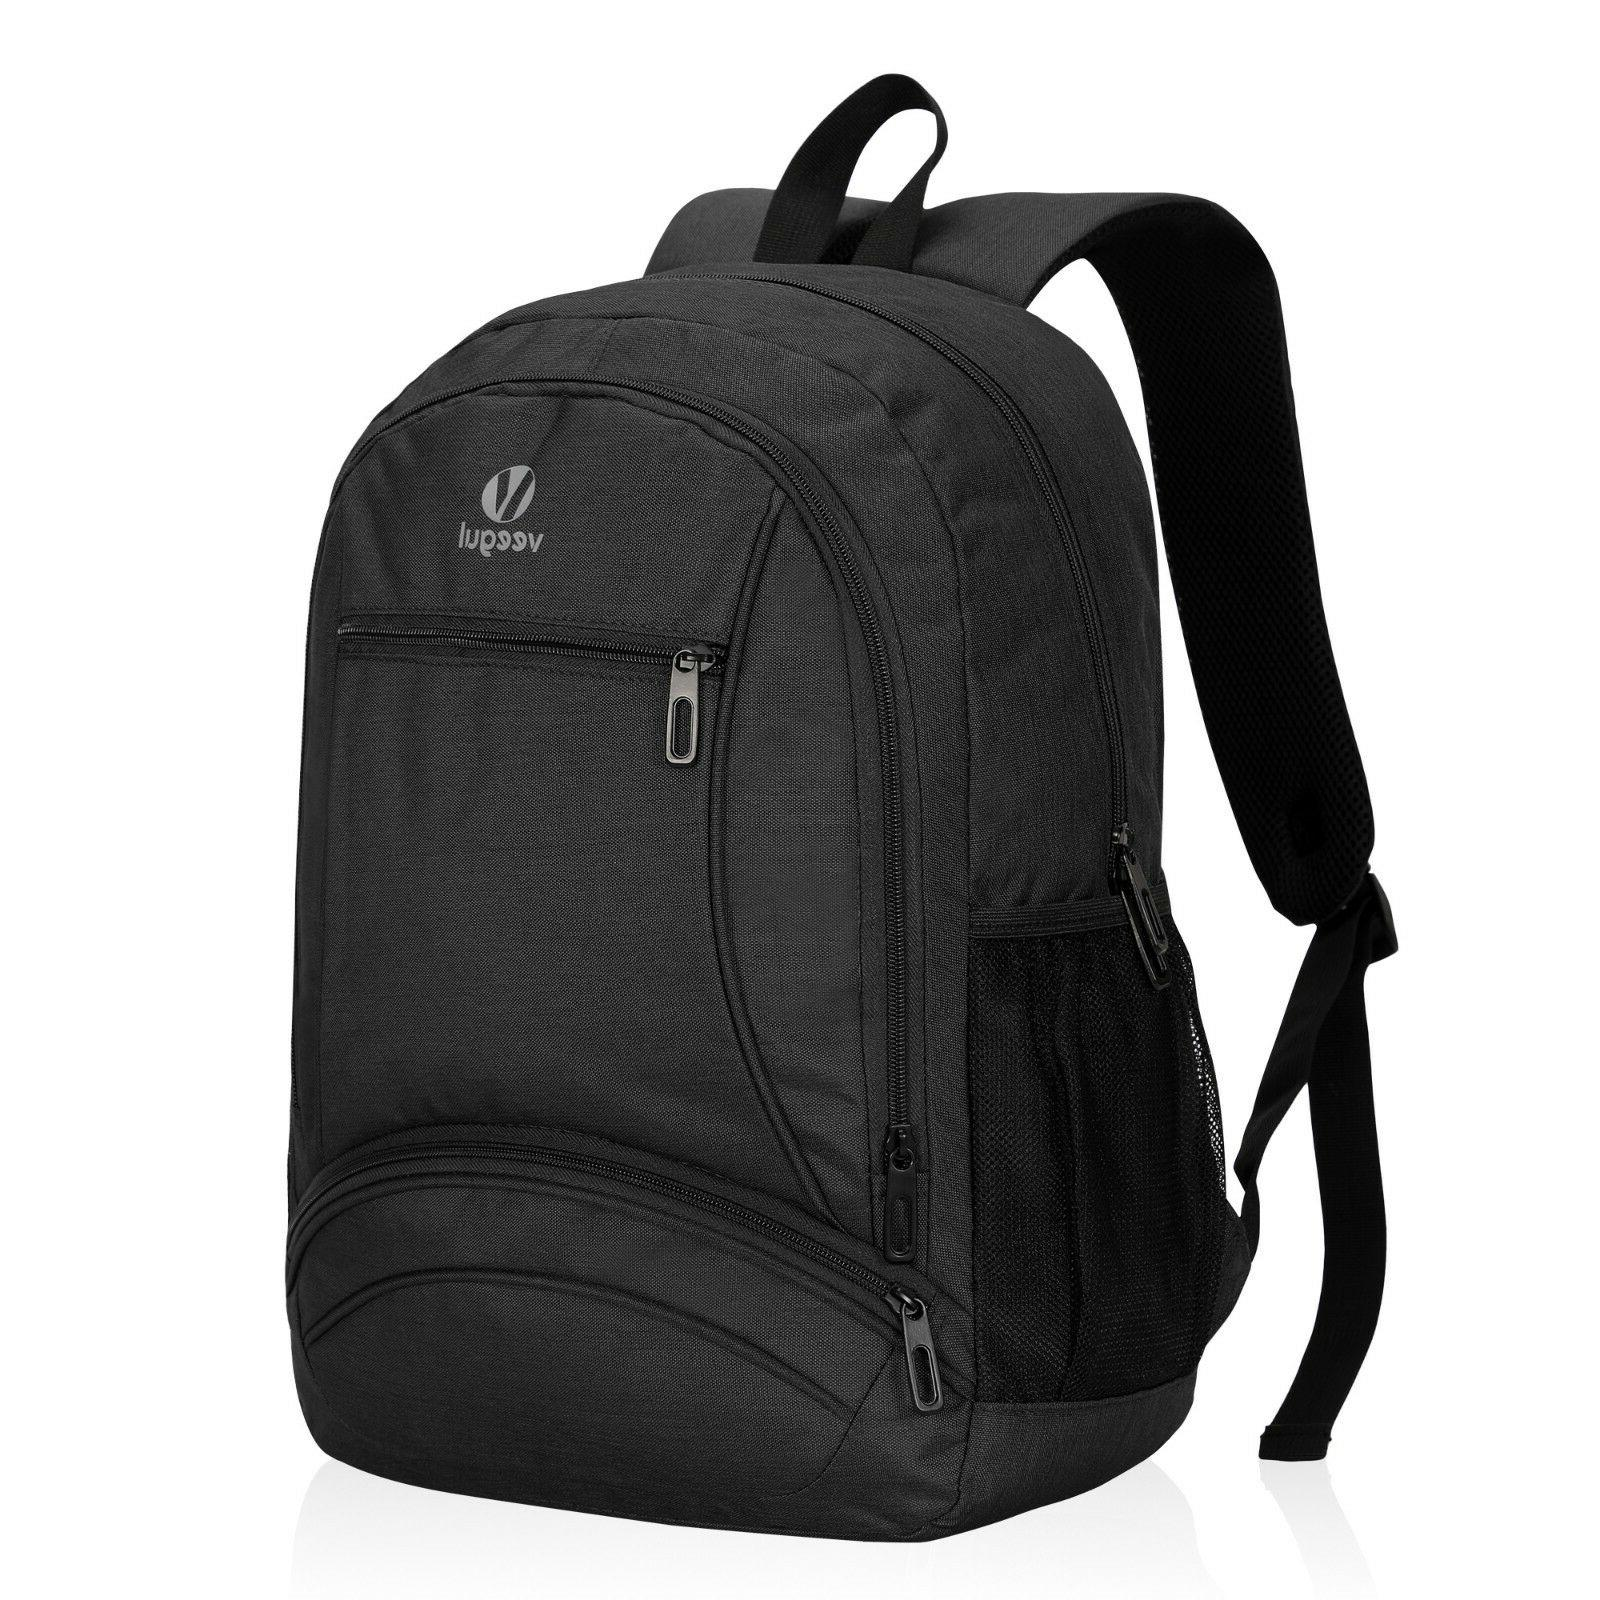 17 inch multipurpose big capacity school daypack